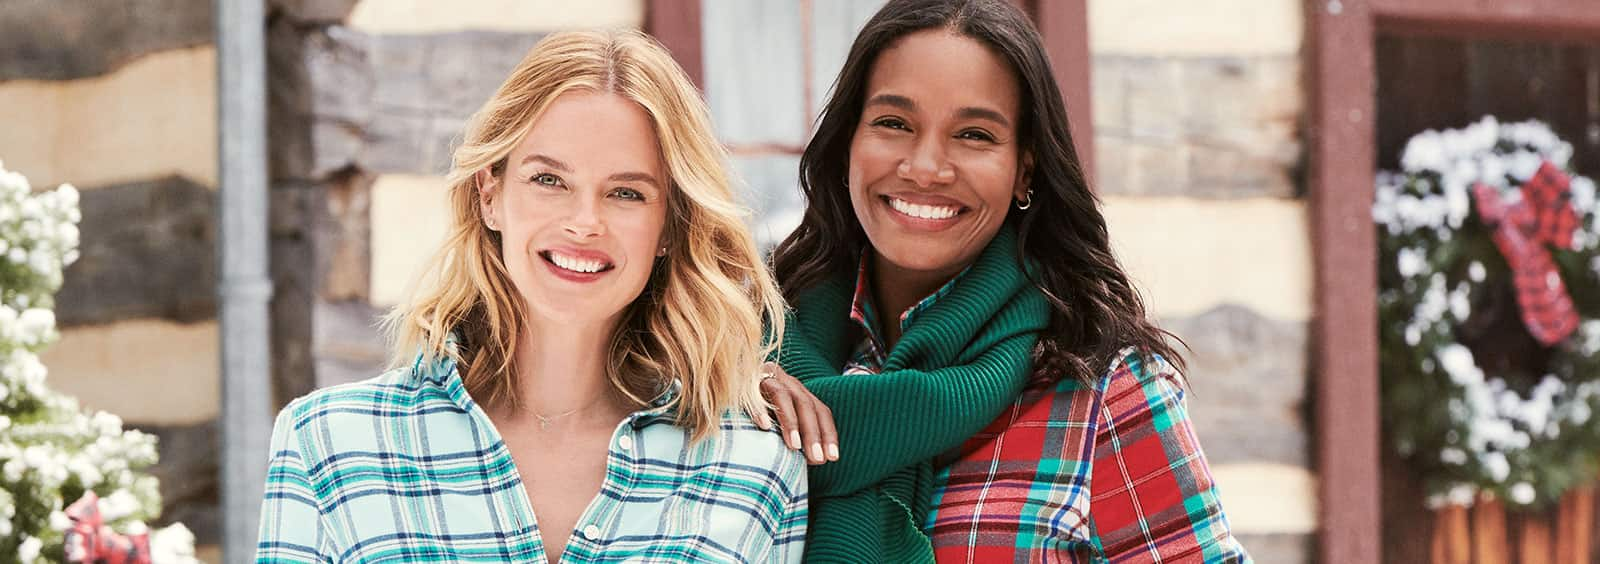 How to Style Your Jeans with Flannel Button-Downs